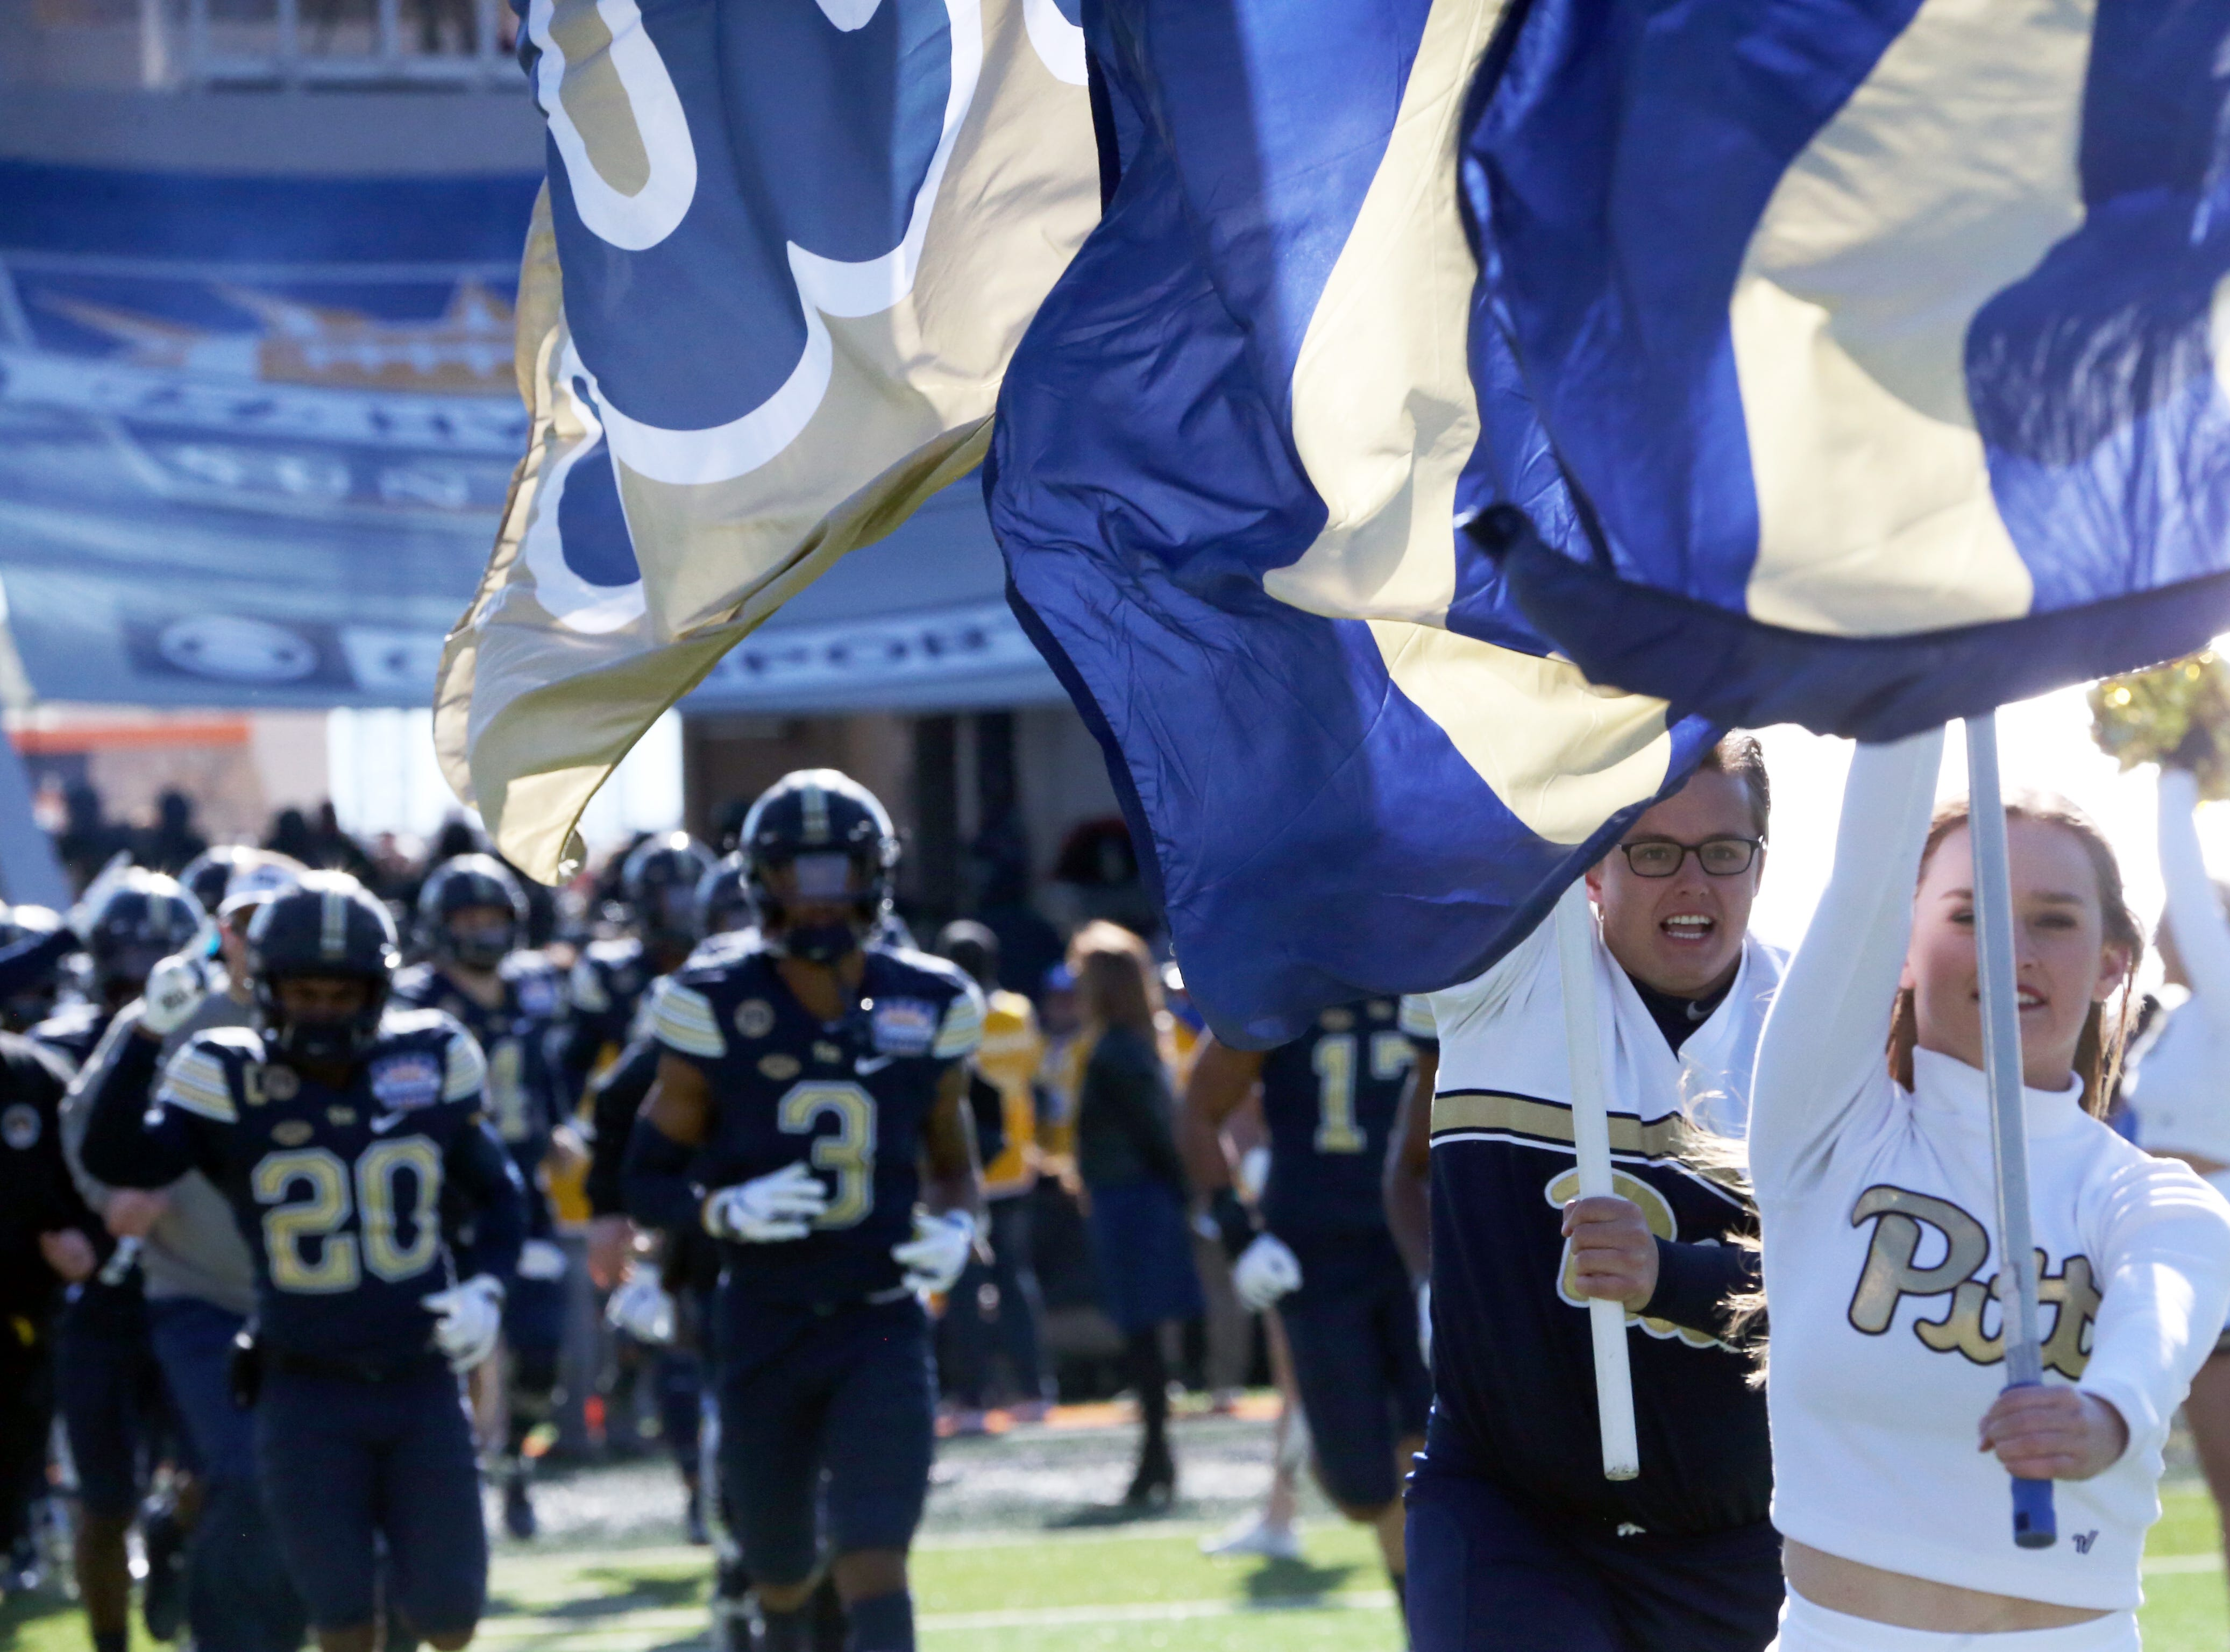 The Pitt Panthers take the field against the Stanford Cardinal Monday.